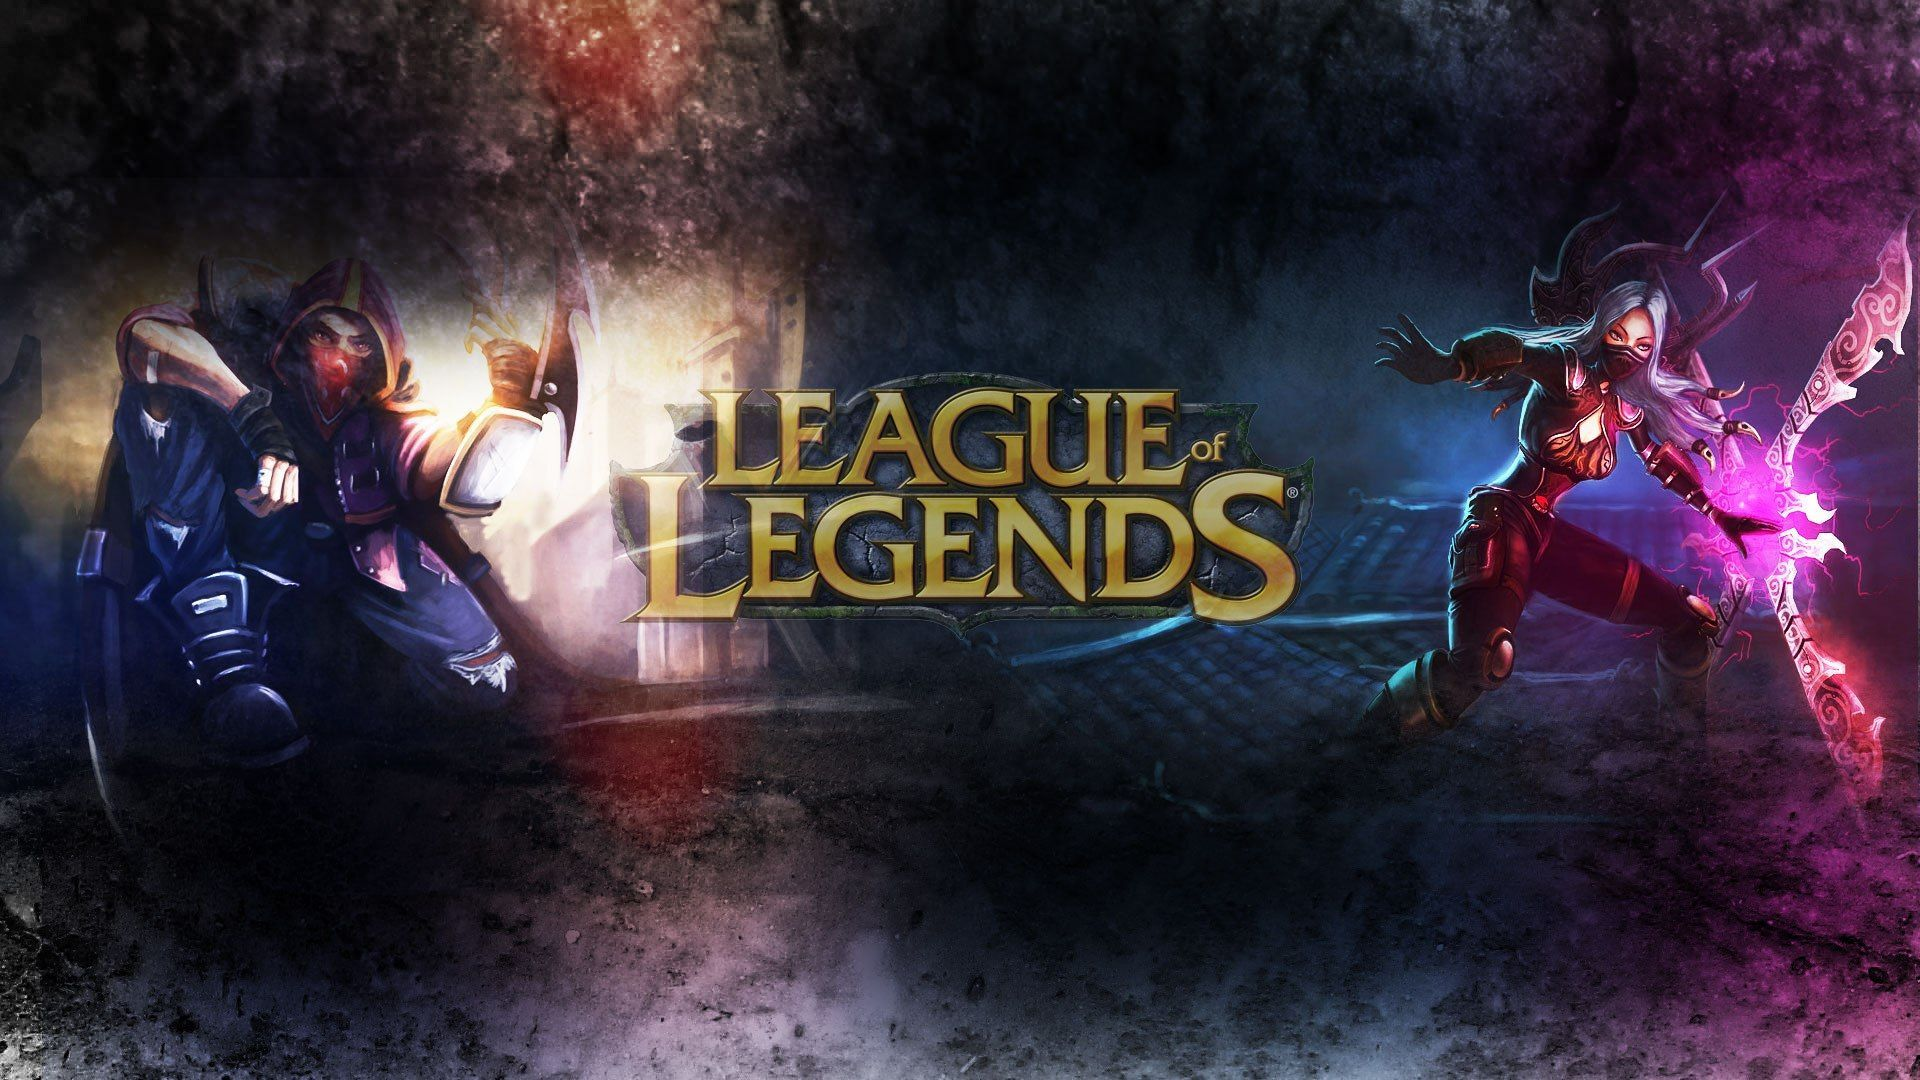 Wallpapers League Of Legends Wallpapers Images - 2560 X 1440 Wallpaper Lol , HD Wallpaper & Backgrounds